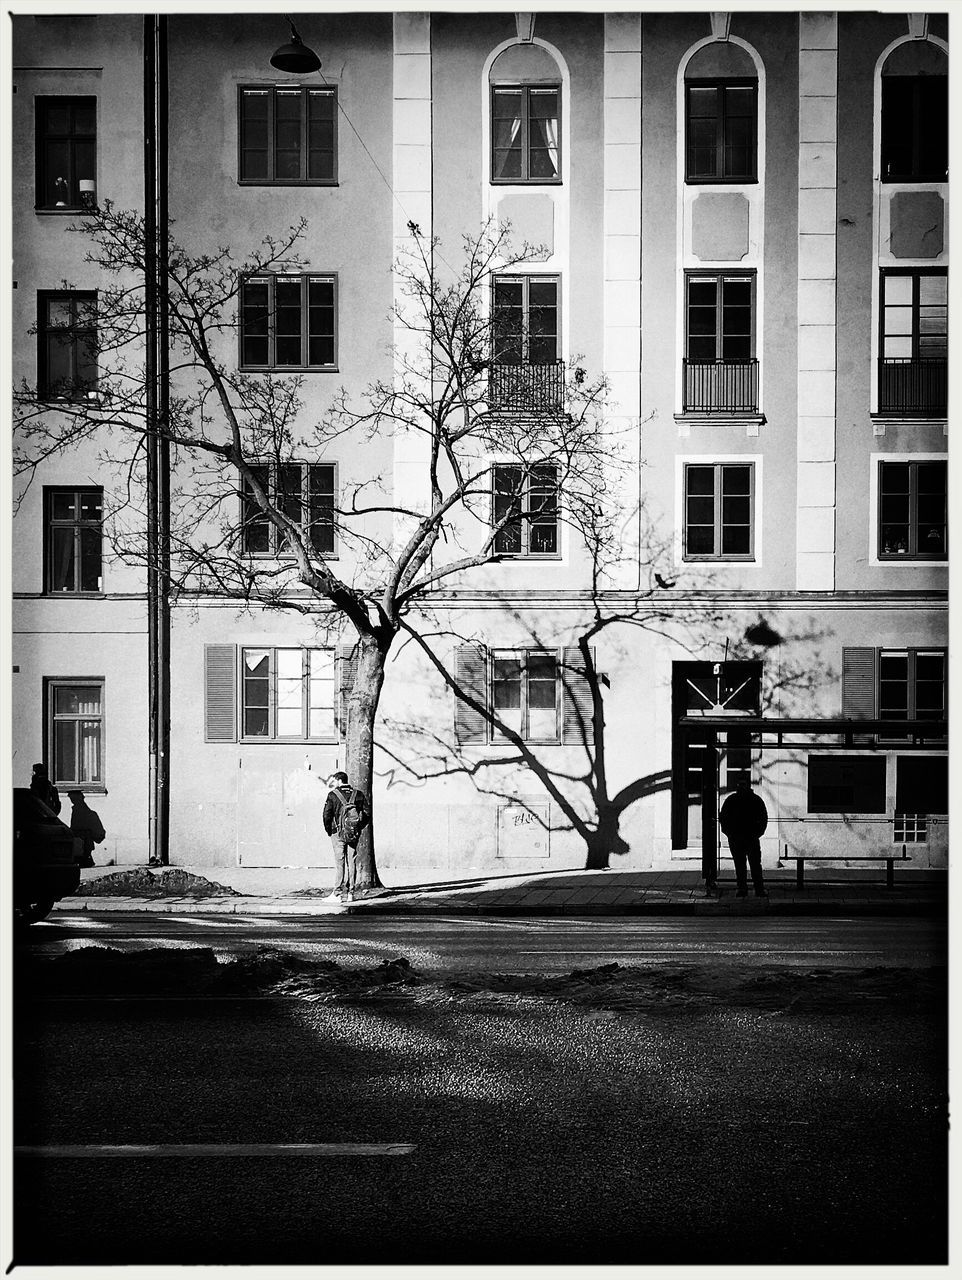 building exterior, architecture, built structure, street, city, outdoors, real people, city life, road, men, day, full length, one person, tree, people